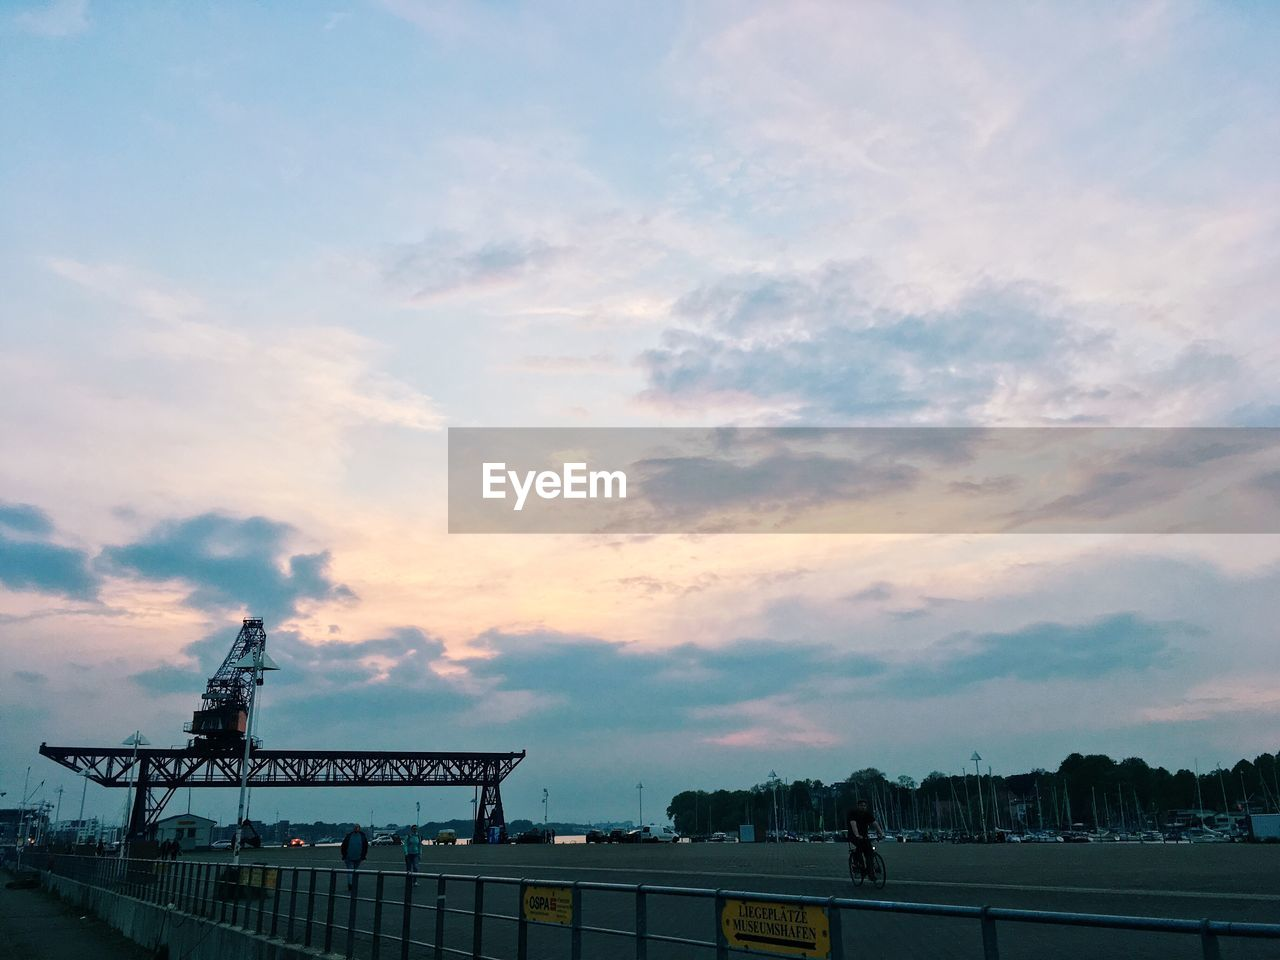 cloud - sky, sky, architecture, machinery, built structure, nature, sunset, industry, crane - construction machinery, construction industry, building exterior, transportation, outdoors, development, silhouette, no people, construction site, business, railing, low angle view, construction equipment